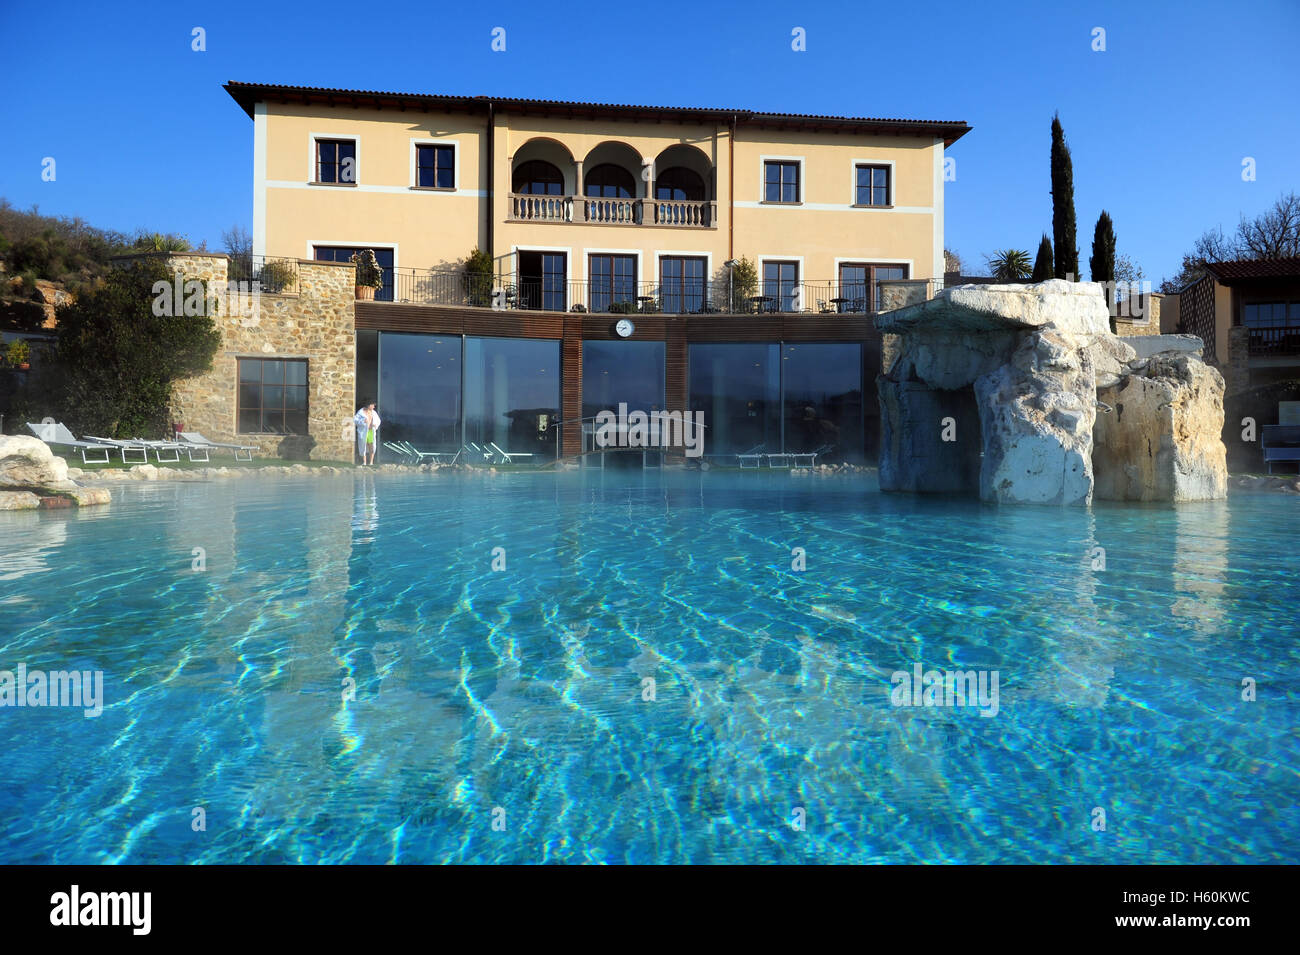 Thermae hotel stock photos thermae hotel stock images alamy - Hotel a bagno vignoni ...